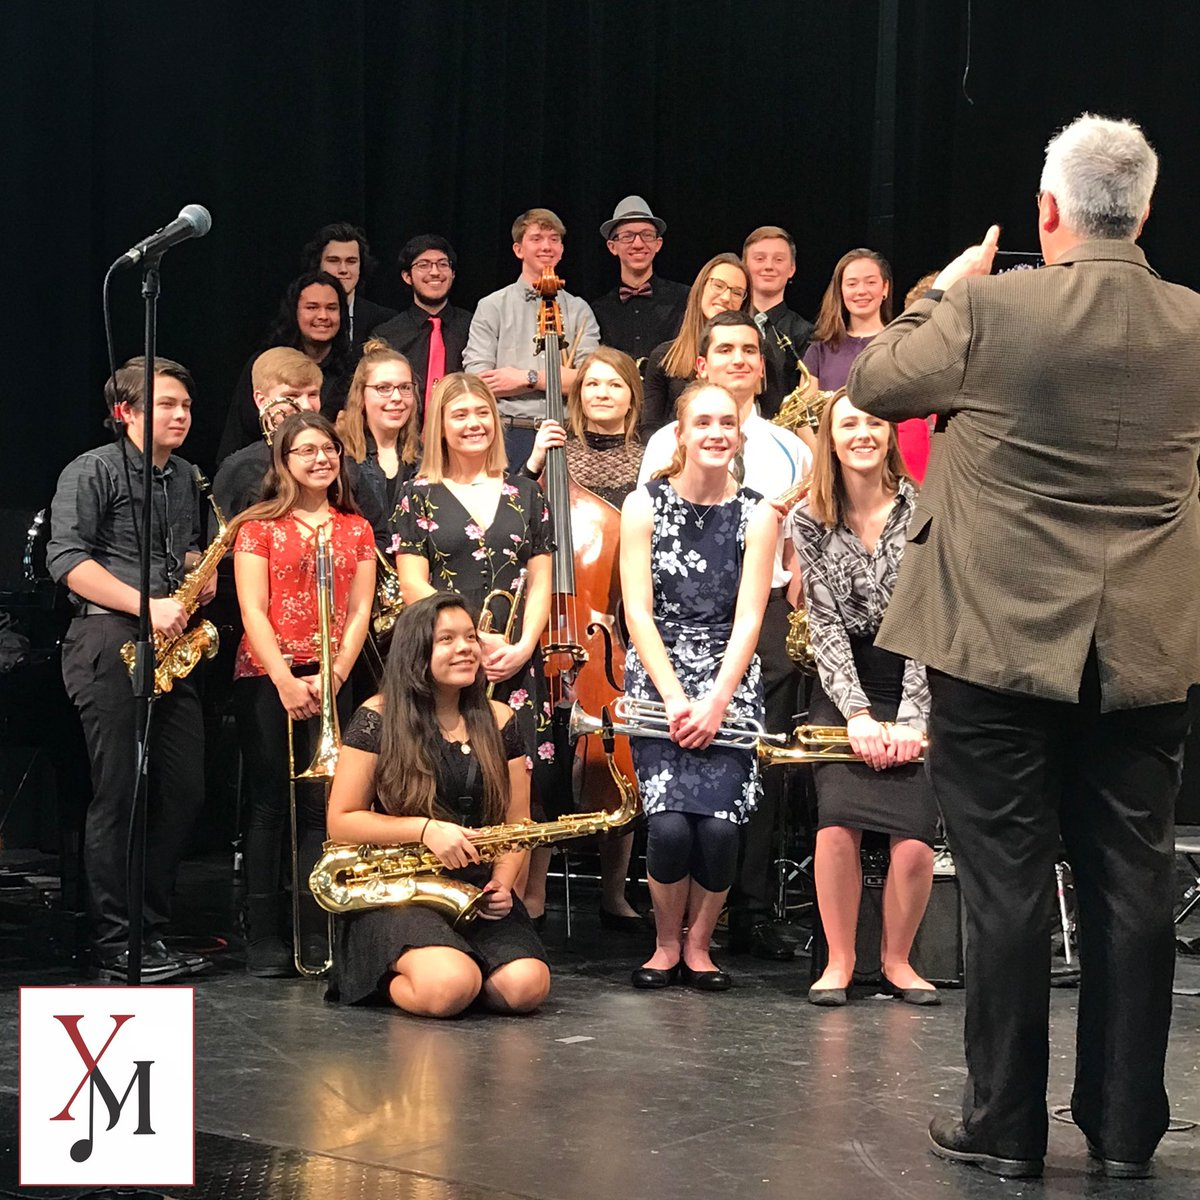 Concerts and photo ops go hand in hand  - At Thursday night's concert, our music instructors and parents were capturing the smiles of our jazz musicians - #Y115Music #JazzBand #FoxPridepic.twitter.com/qBchaR1ya7